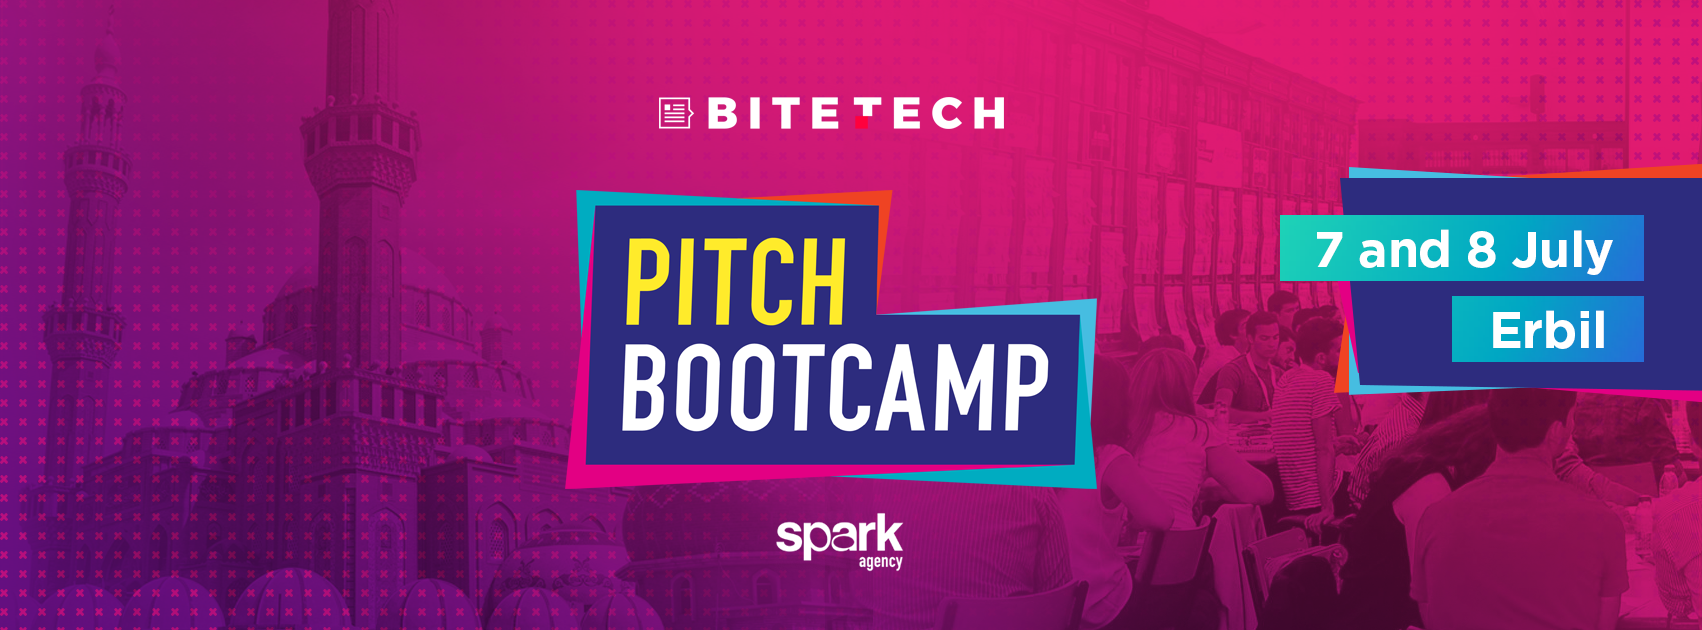 Pitch Bootcamp: A Two-Day Career Accelerator Program is coming to Erbil